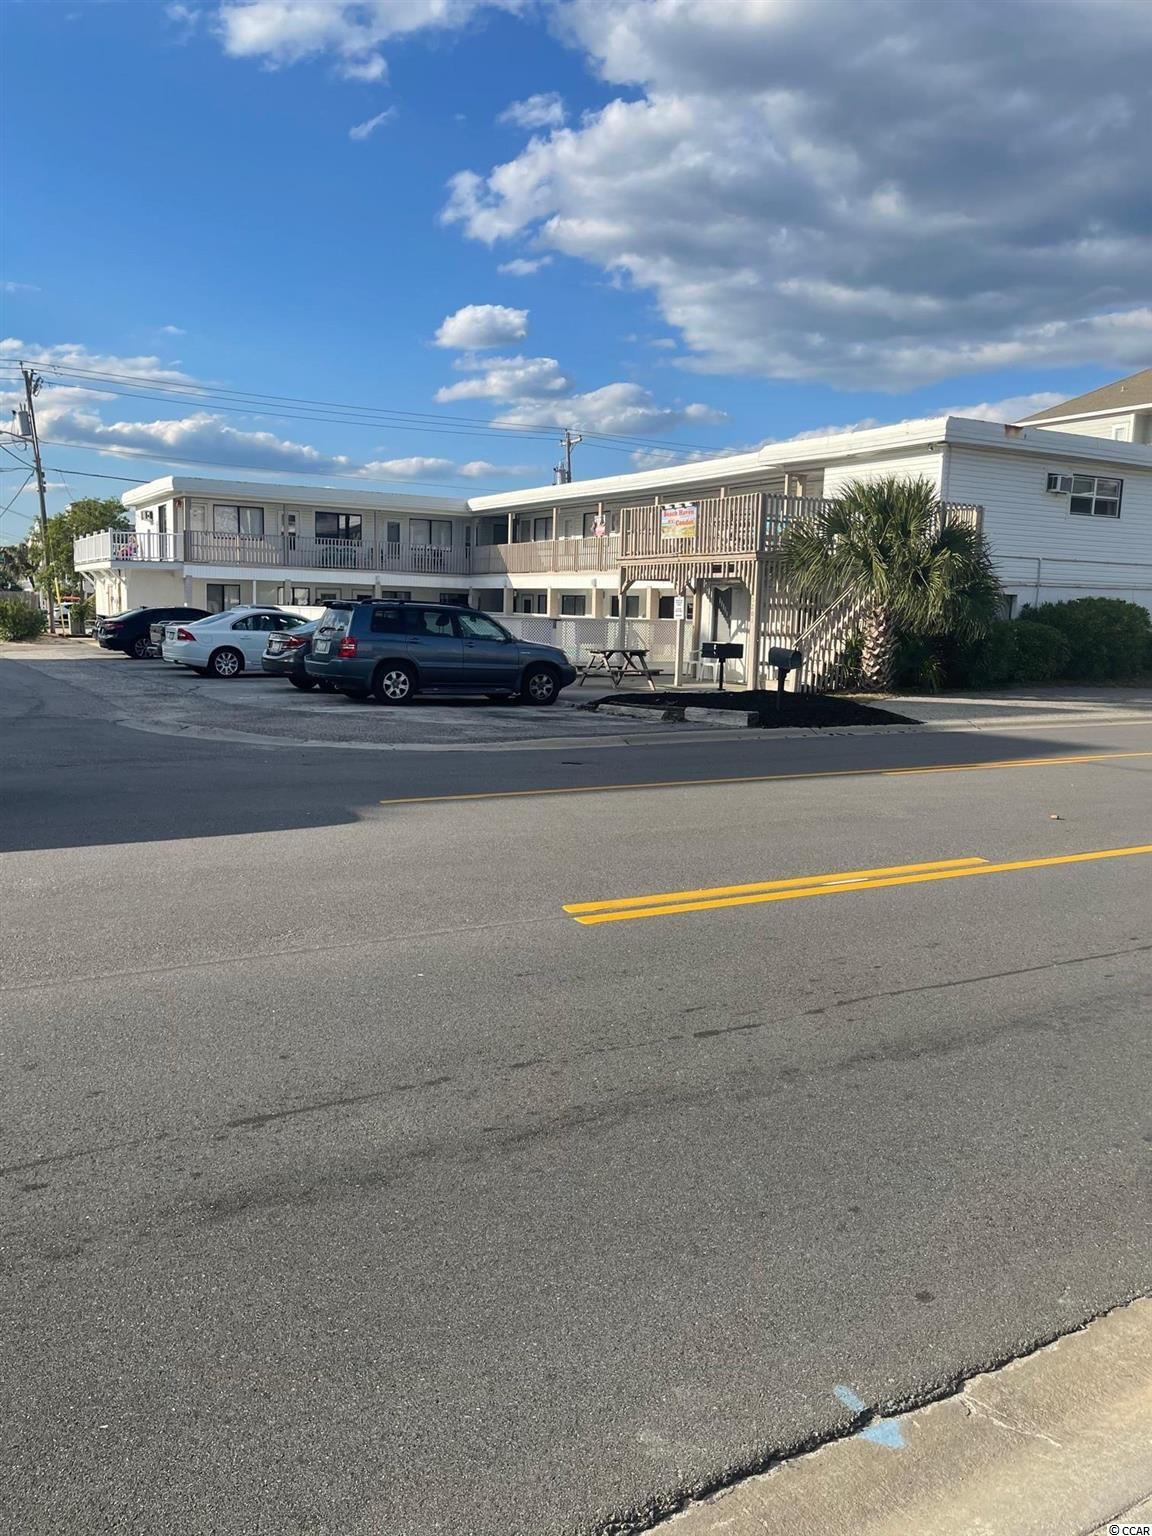 First Floor 1 Bedroom Condo Located in sought after Cherry Grove. Fully Furnished   on Site Pool   HOA Fees include most Utilities Across the street from Public access for the Beach